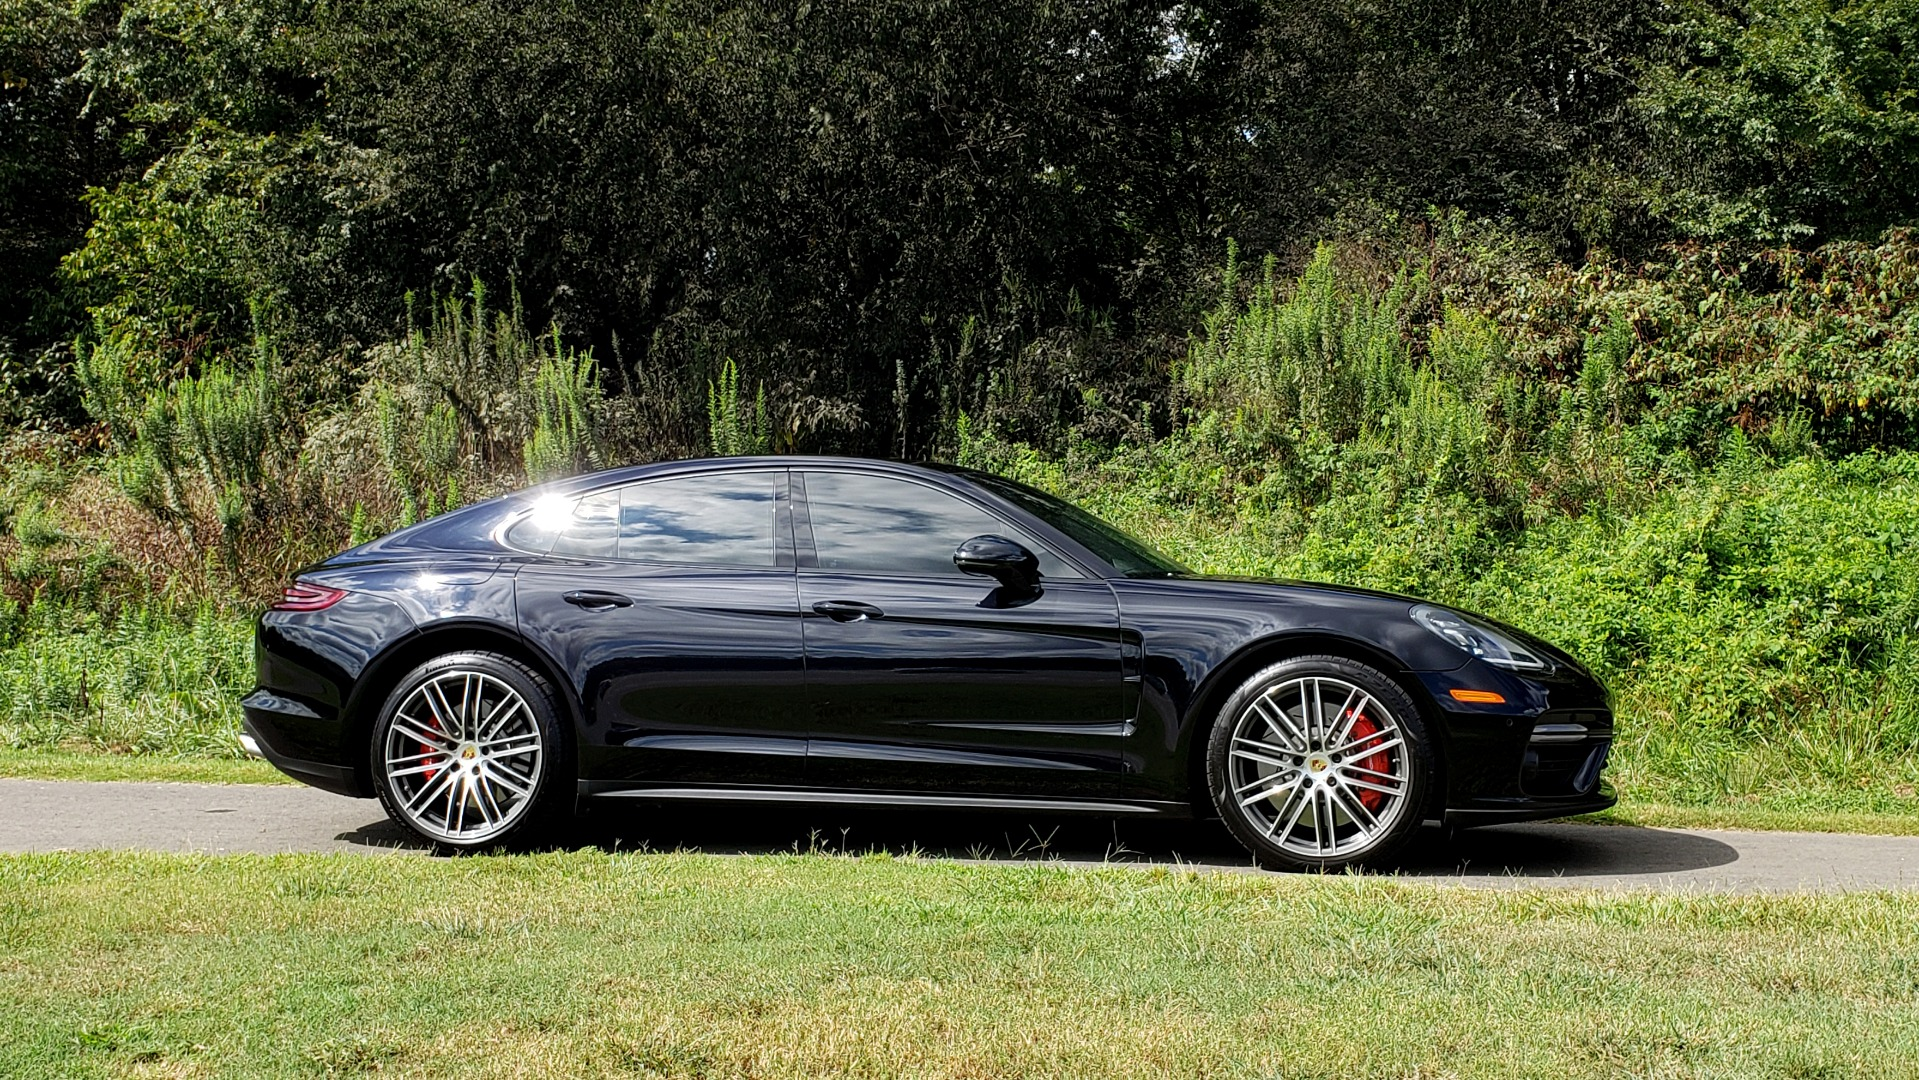 Used 2017 Porsche PANAMERA TURBO AWD / 4.0L V8 / AUTO / NAV / BOSE / REARVIEW / 21IN WHEELS for sale $98,995 at Formula Imports in Charlotte NC 28227 7